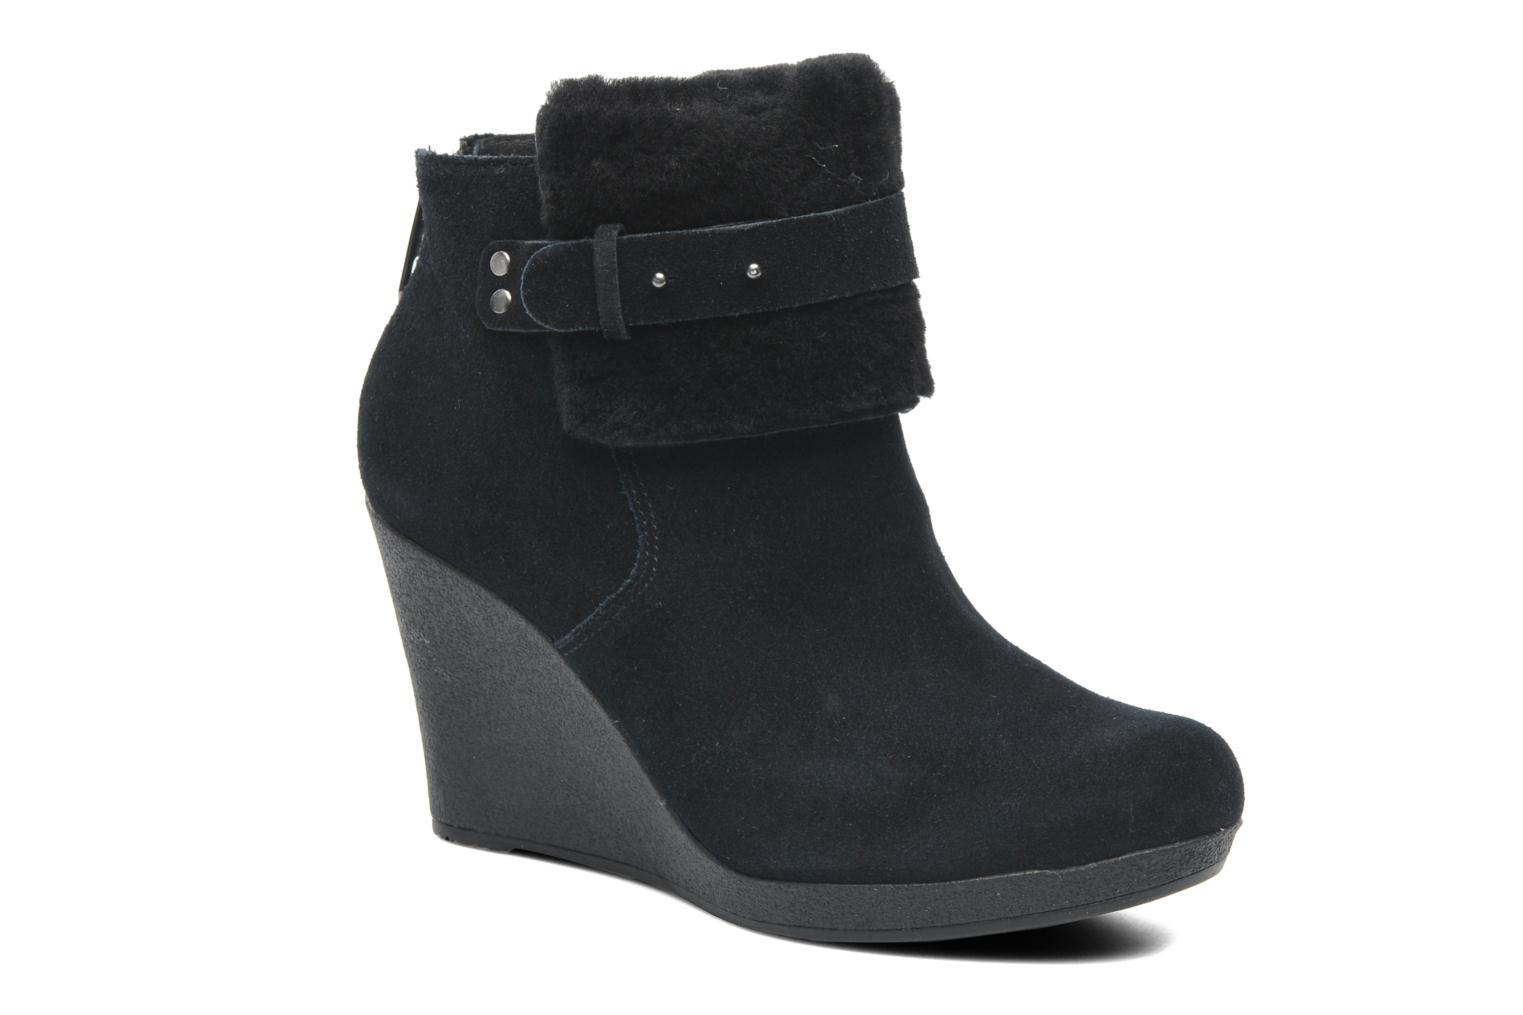 Real Ugg Australia Antonia - Black